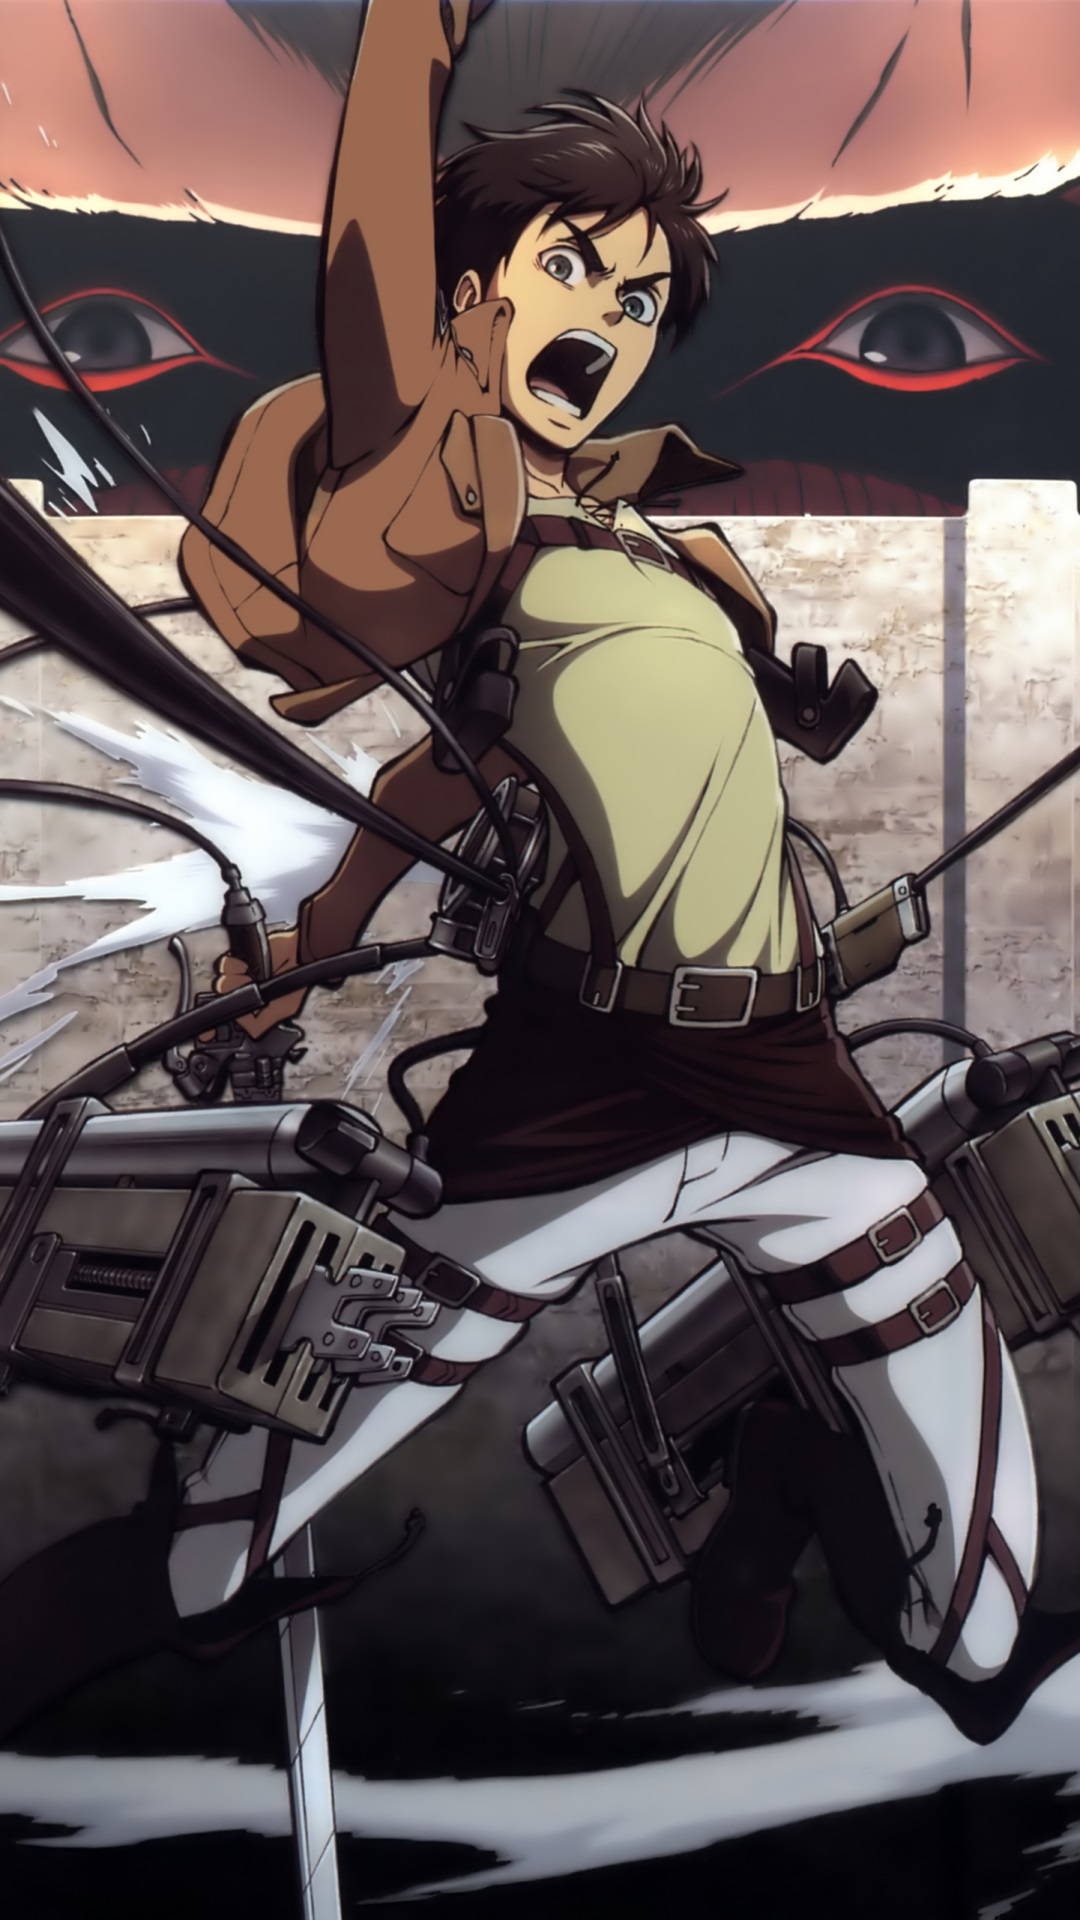 Attack On Titan Iphone Wallpaper Attack On Titan Wallpaper Iphone Shingeki 22787 Hd Wallpaper Backgrounds Download